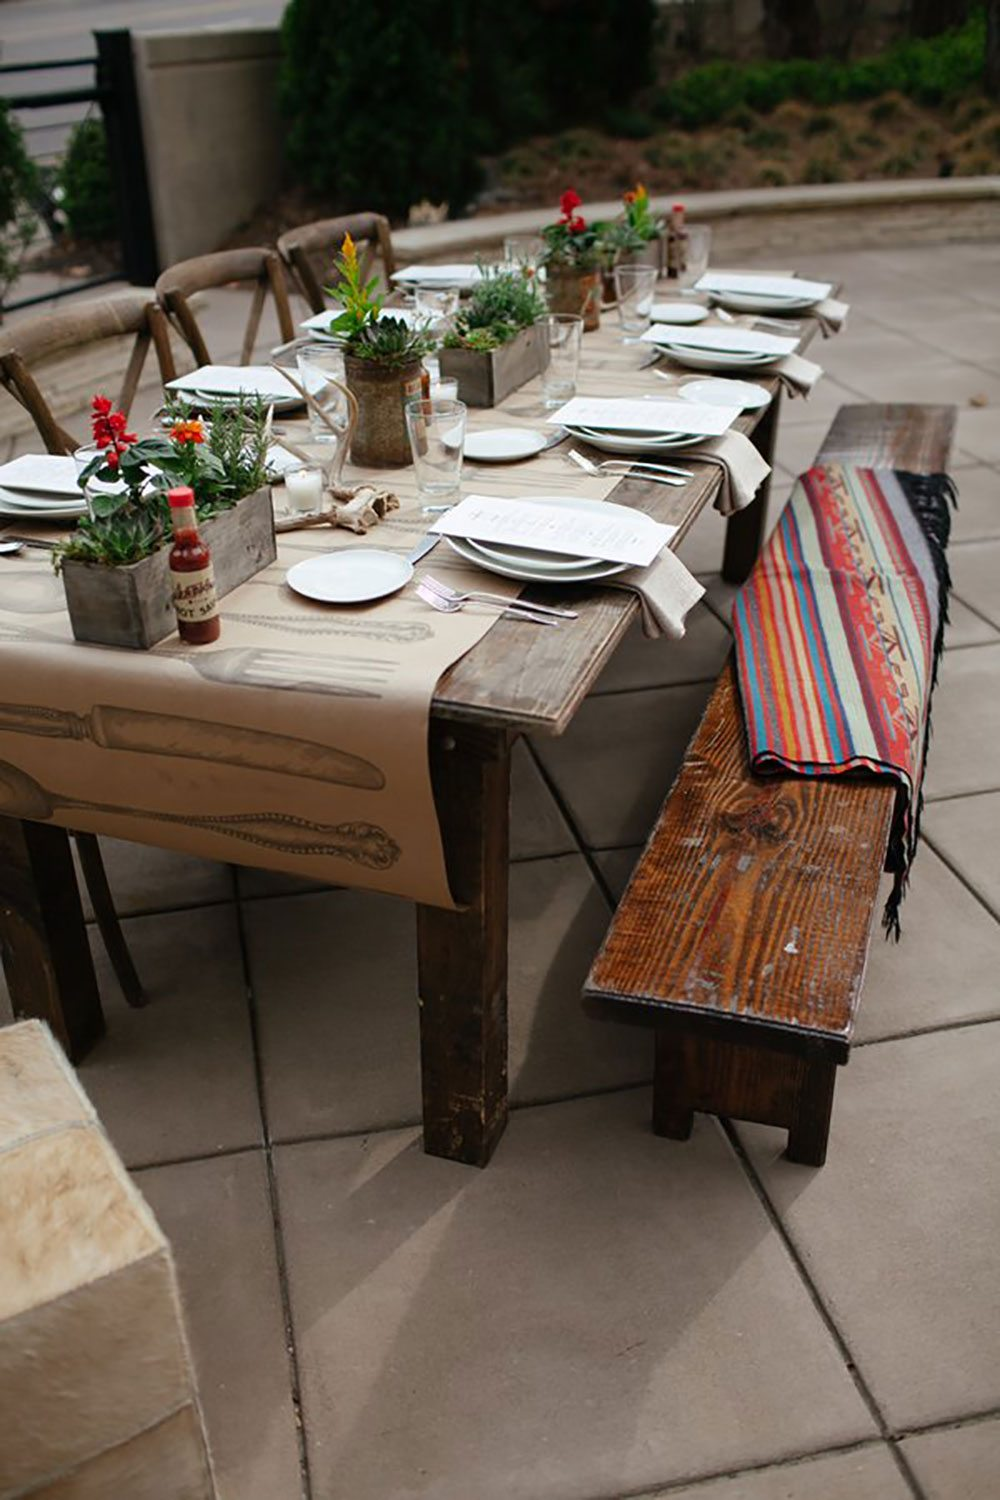 southern events online, rustic bench